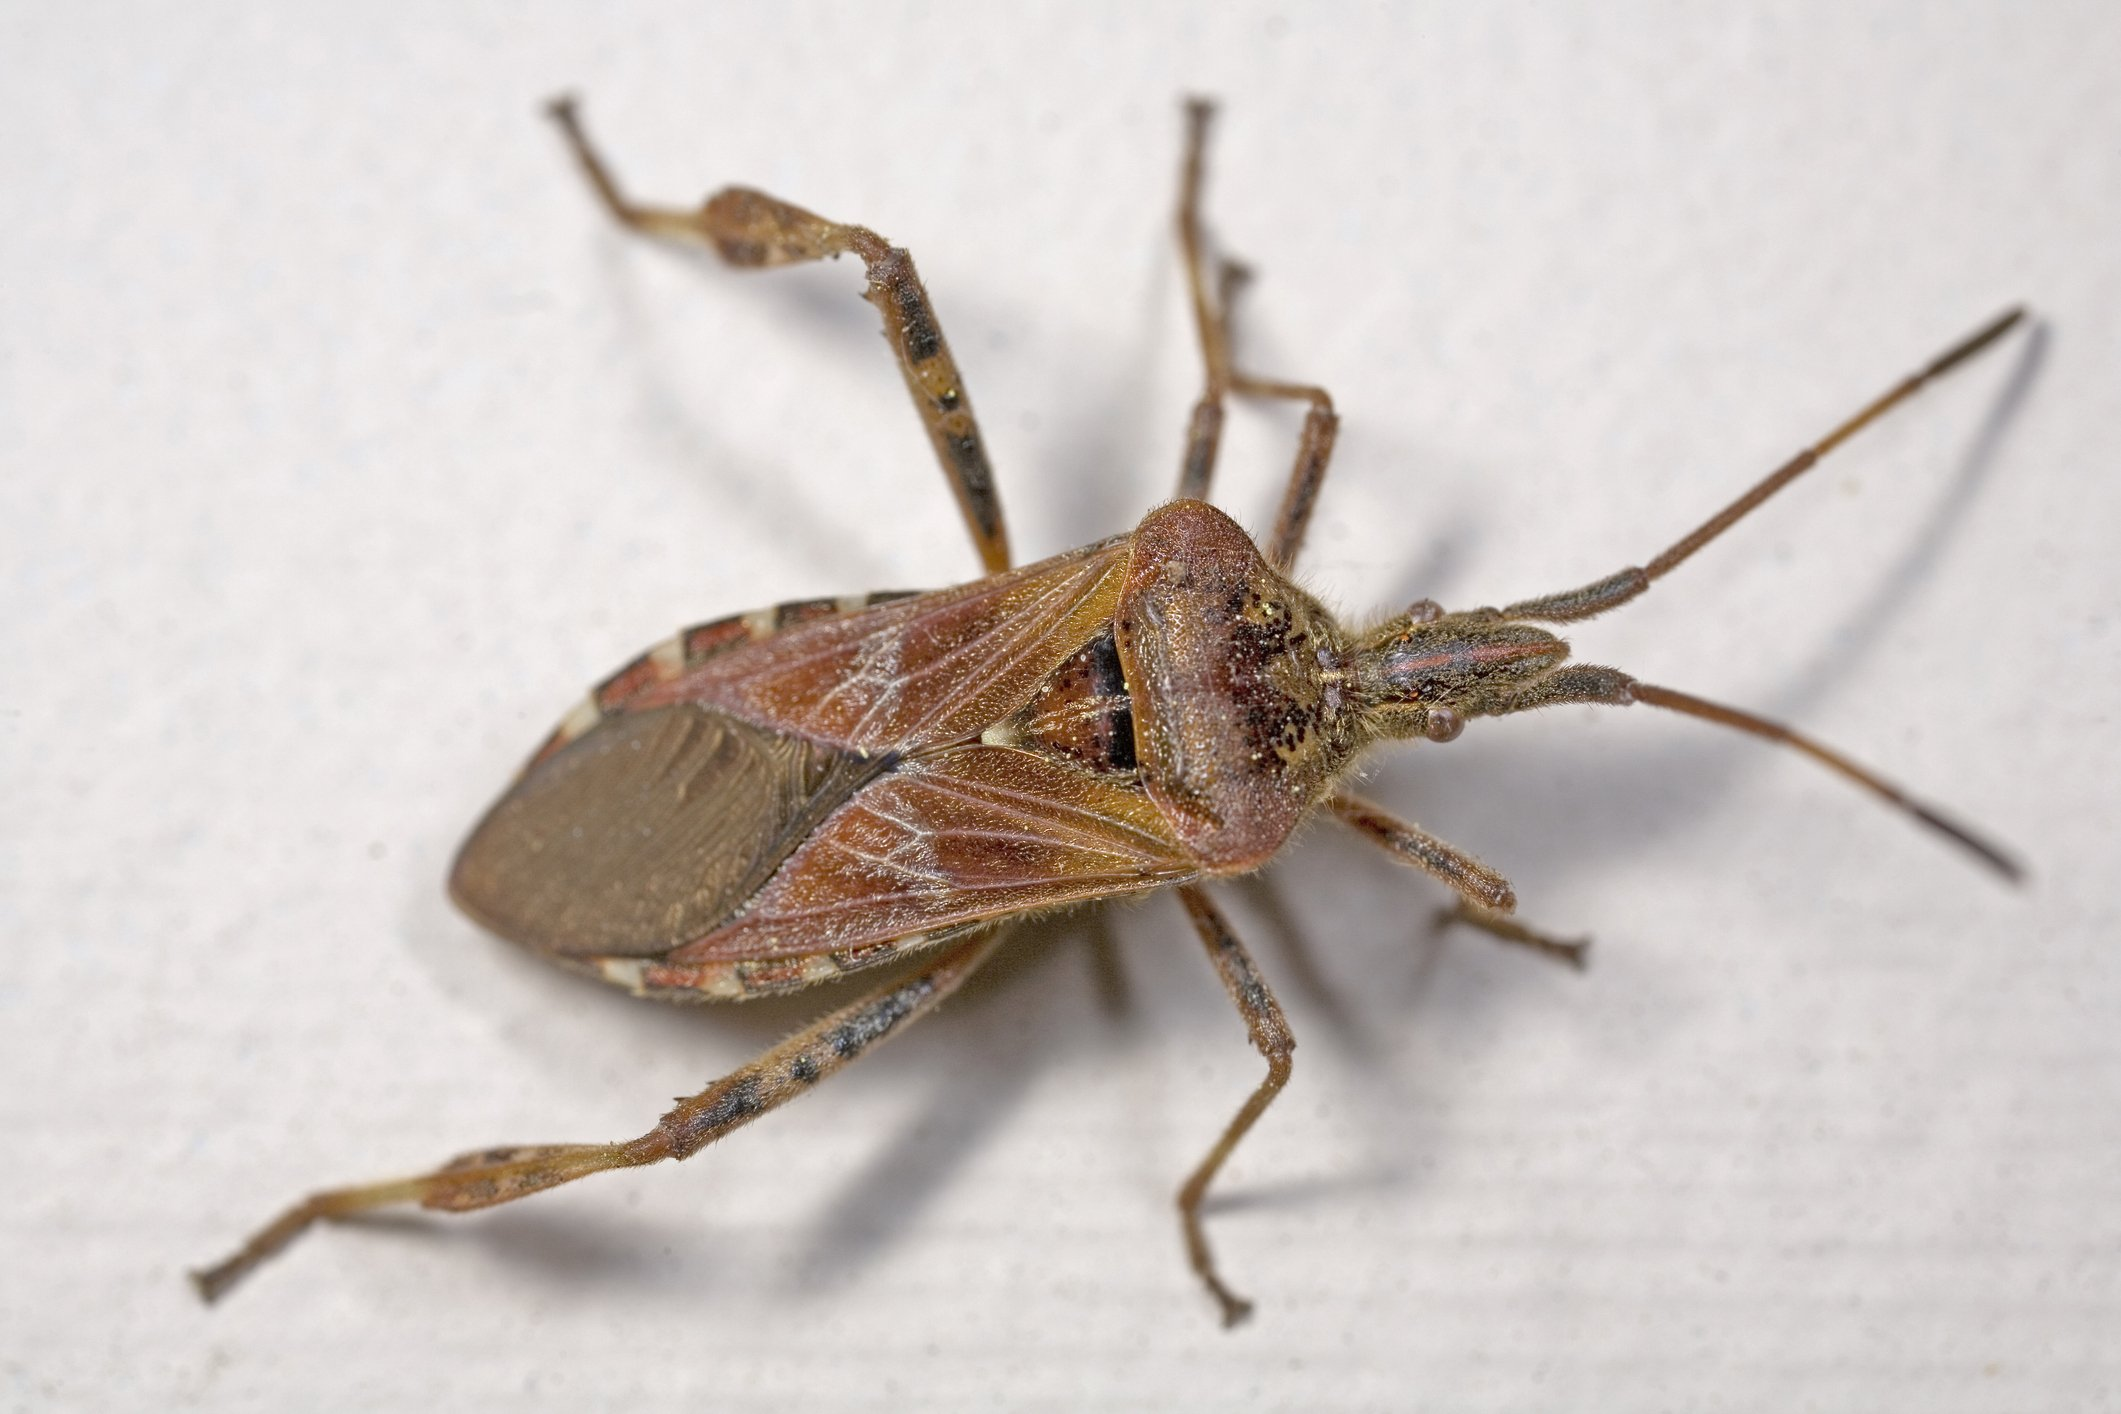 Western Conifer Seed Bug Extermination Near Me